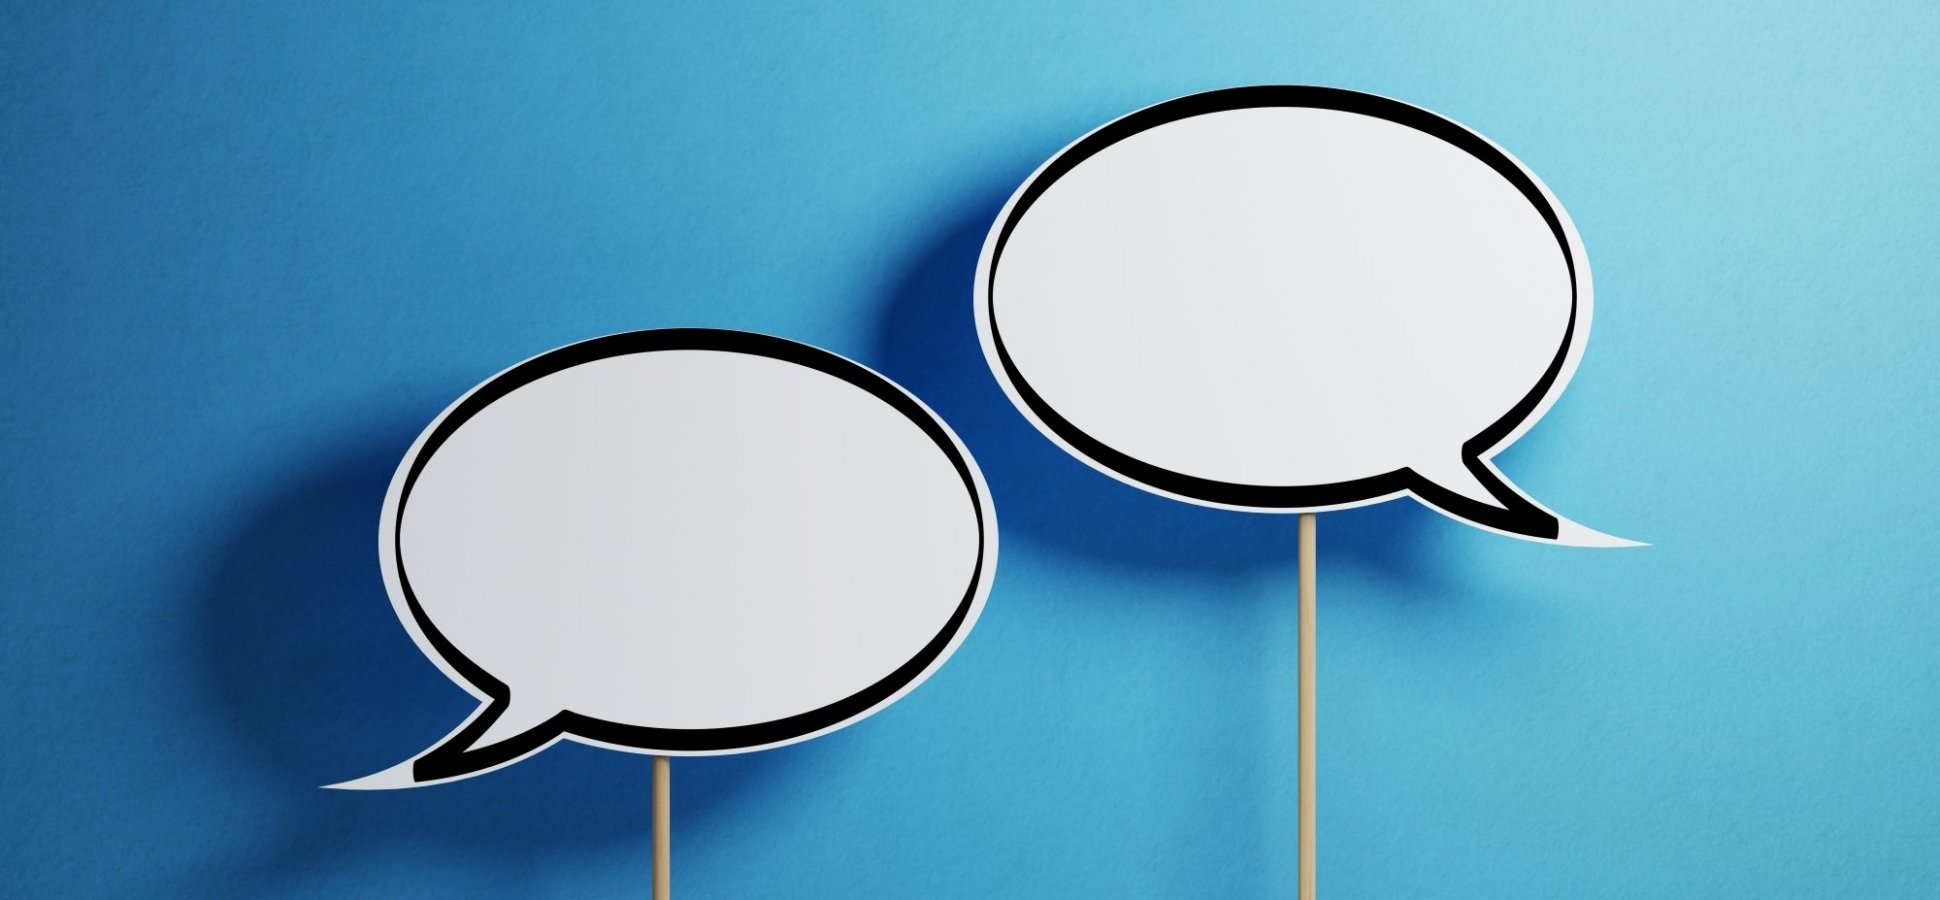 10 Easy Tricks That Will Instantly Make You a Better Conversationalist